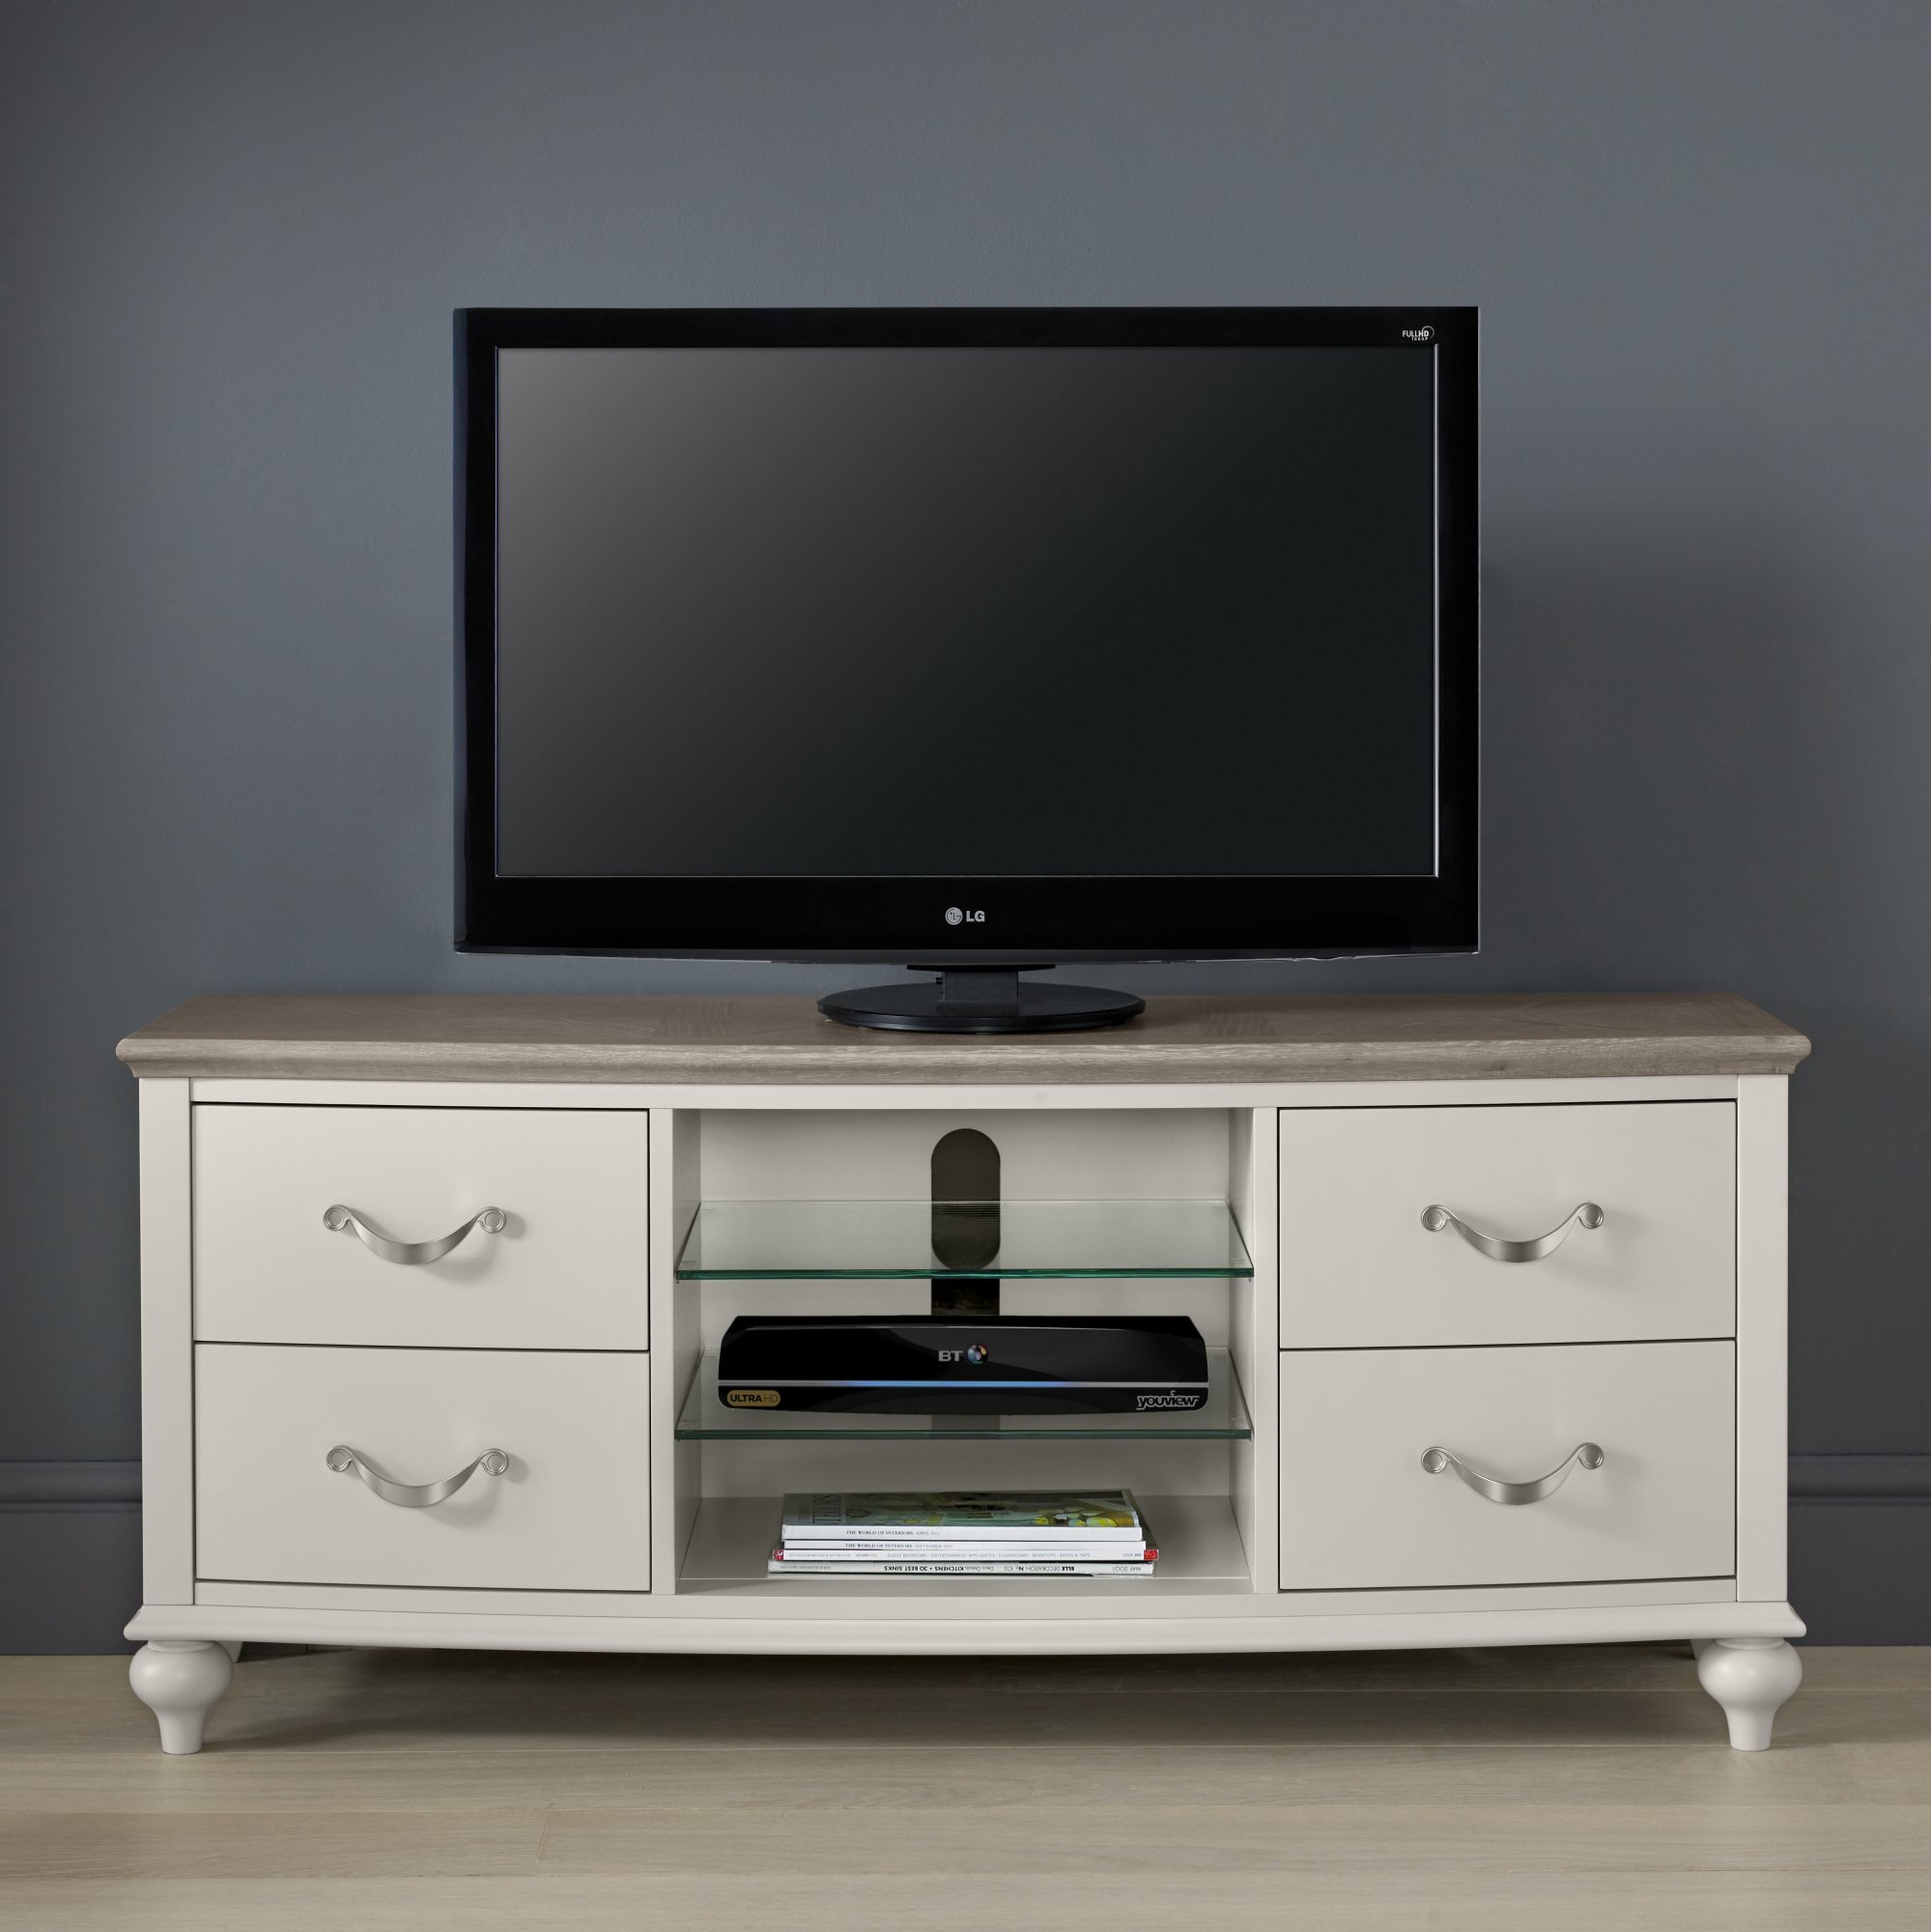 MONICA GREY TV UNIT - L135cm x D41cm x H58cm